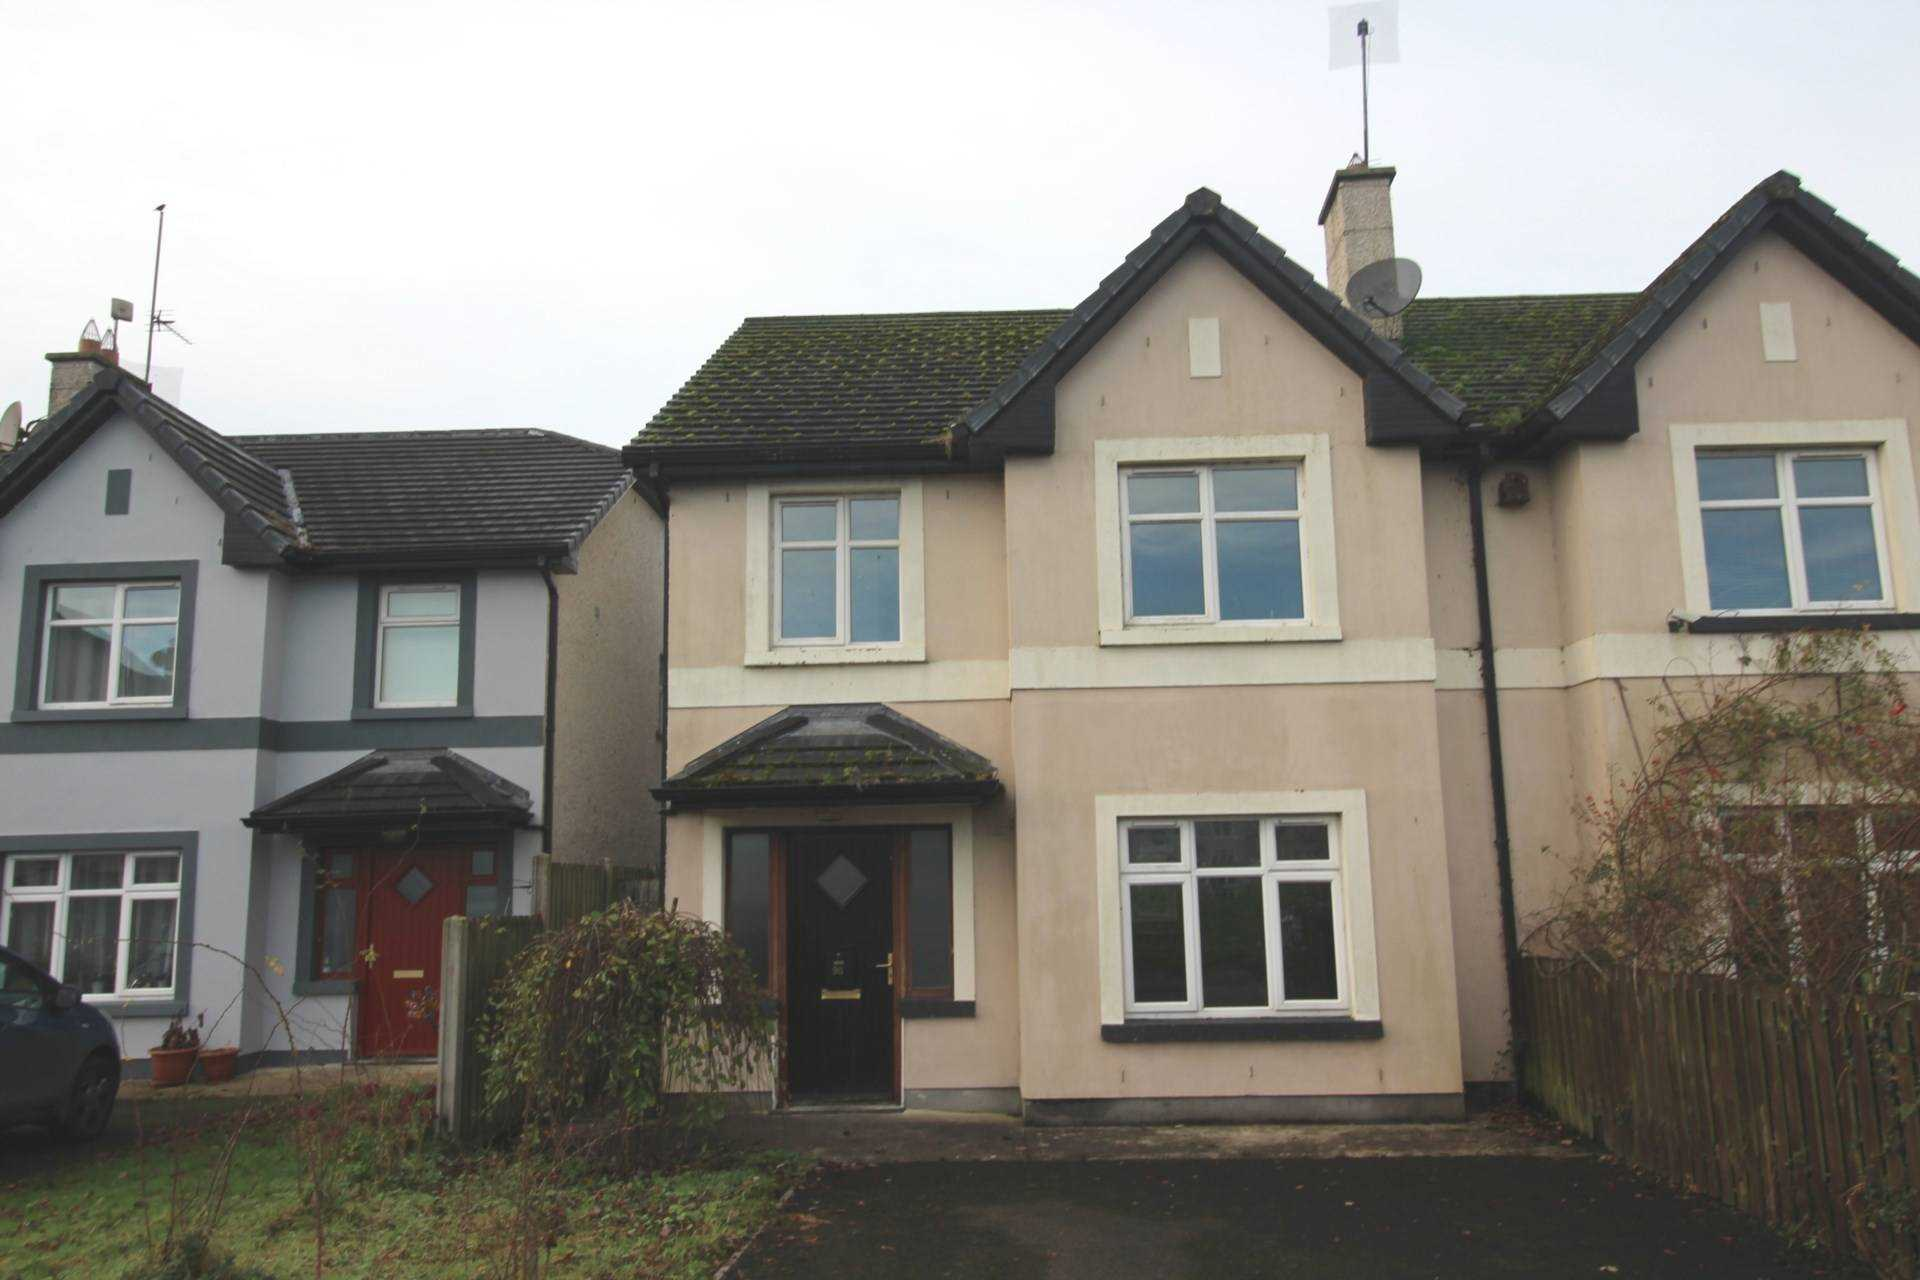 98 The Meadow, Ros Fearna, Murroe, Co. Limerick